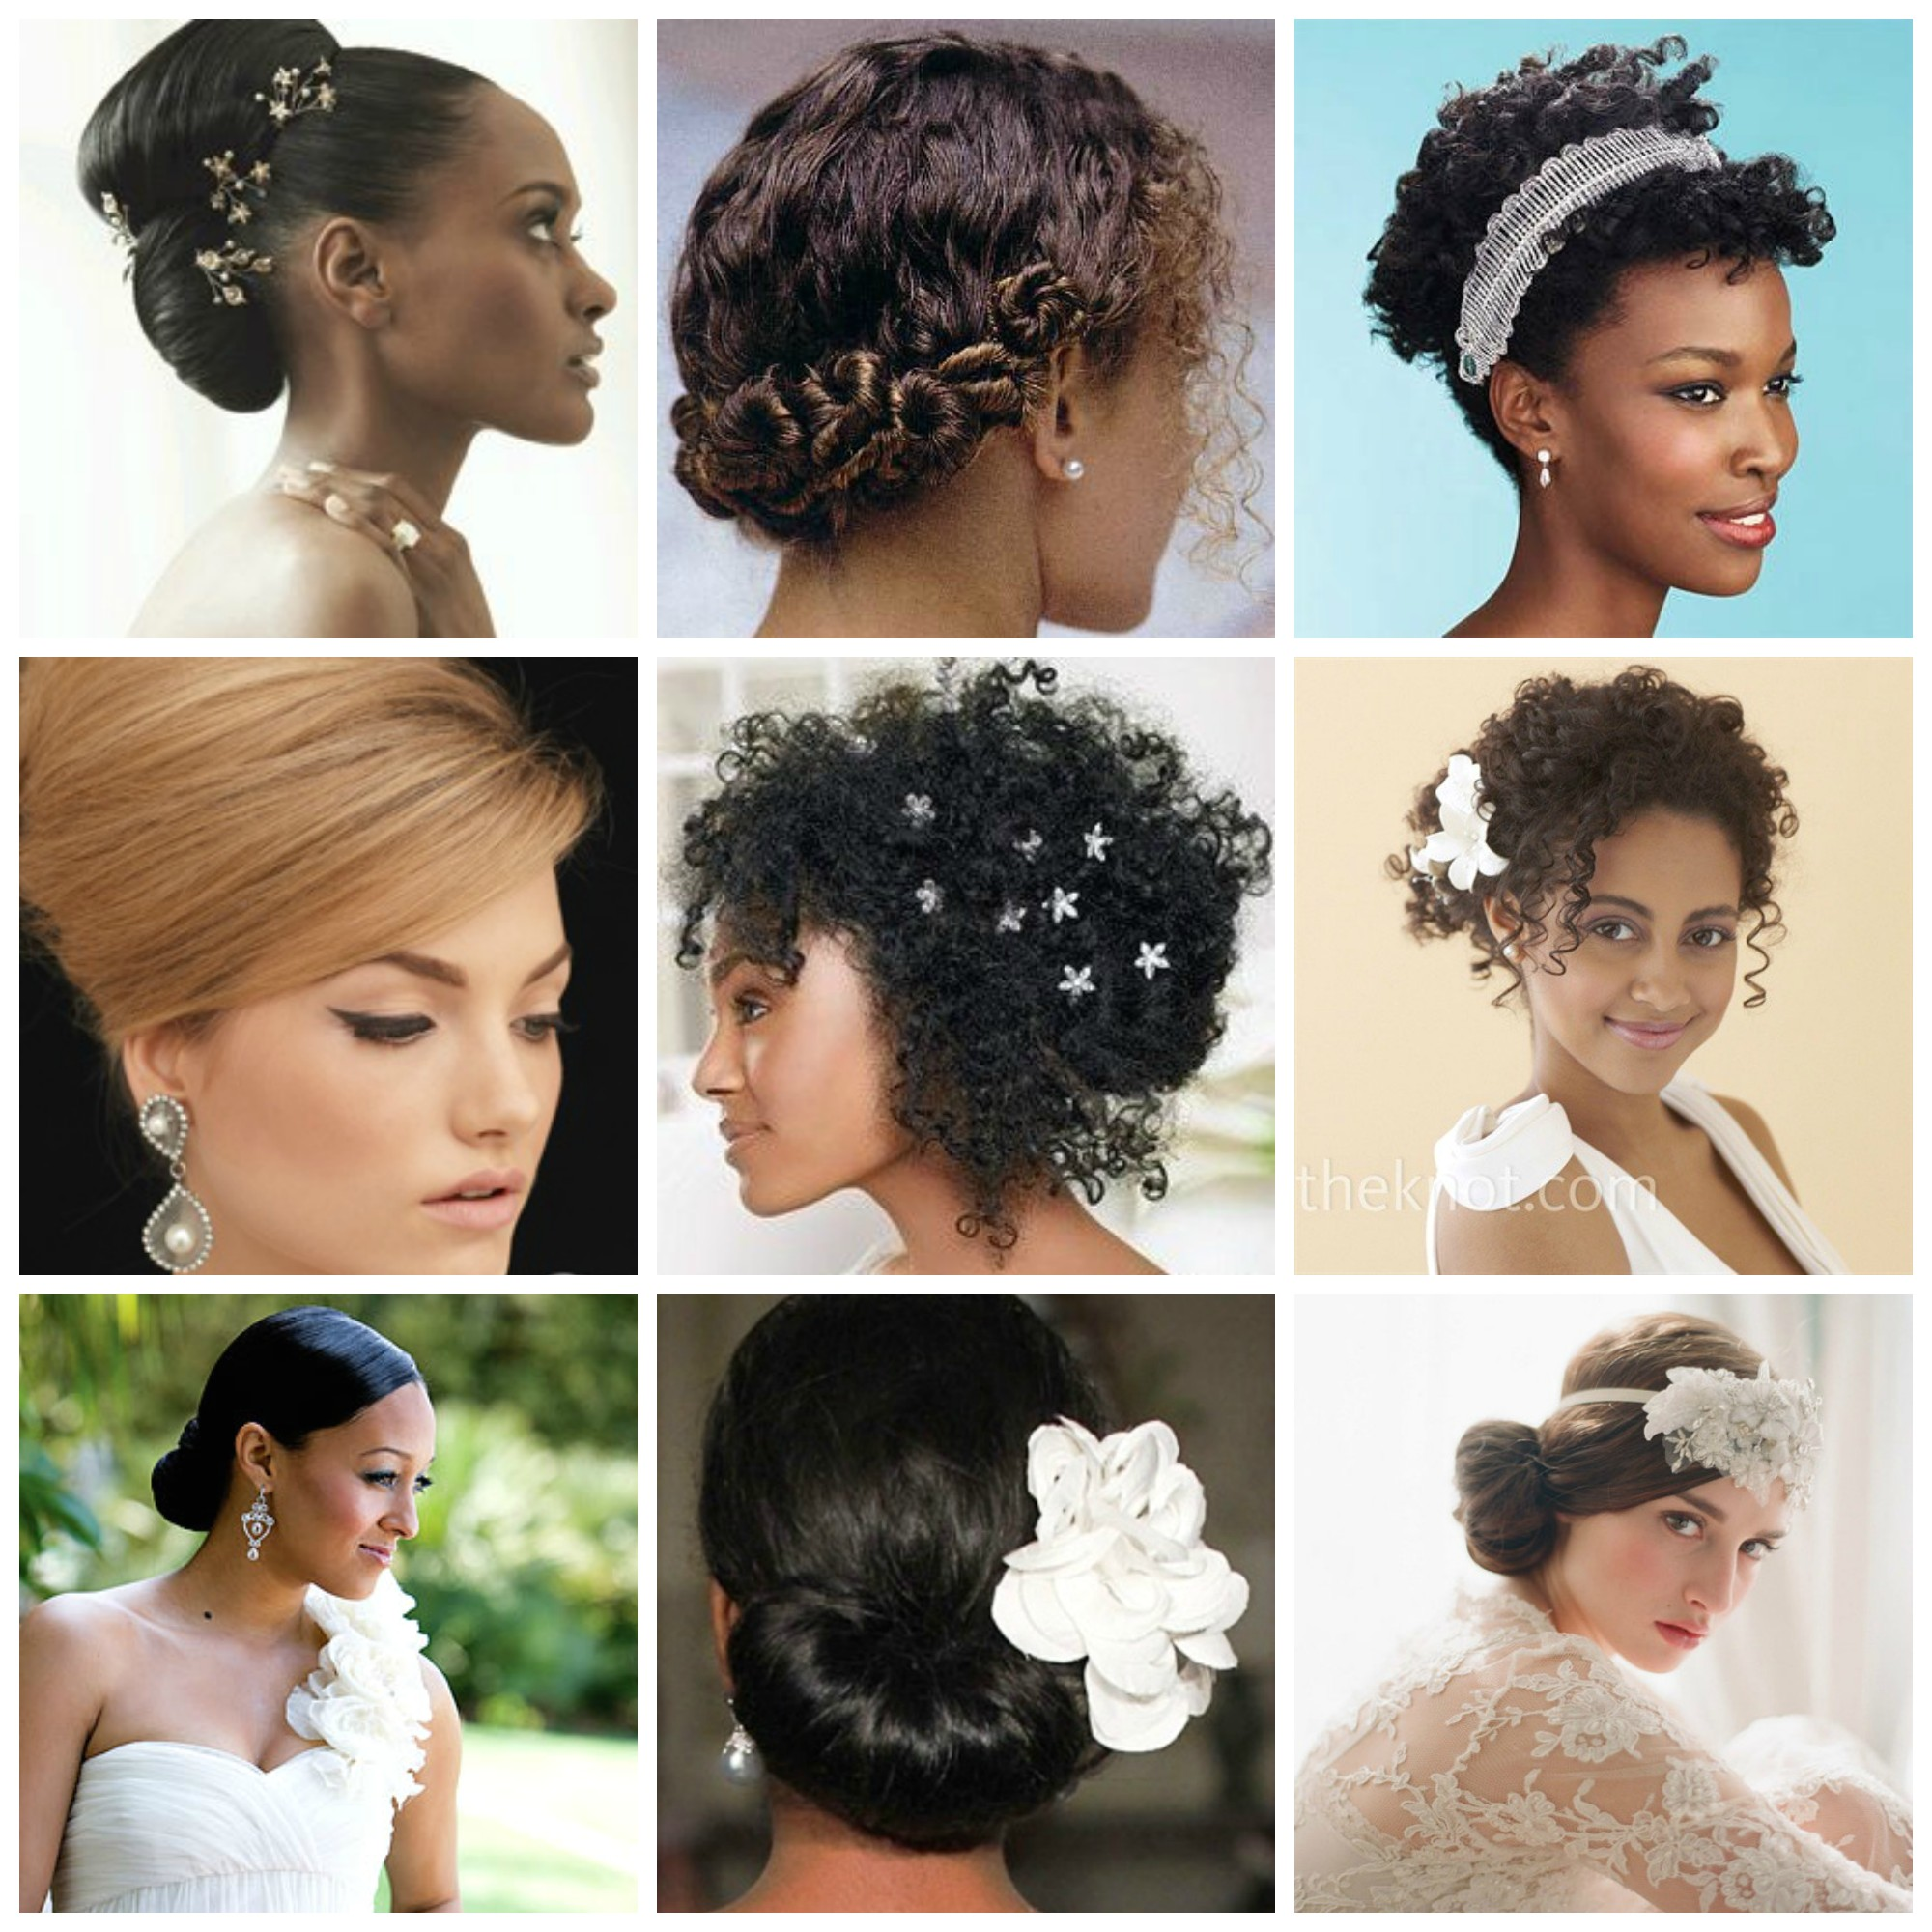 wedding hairstyle ideas for curly hair